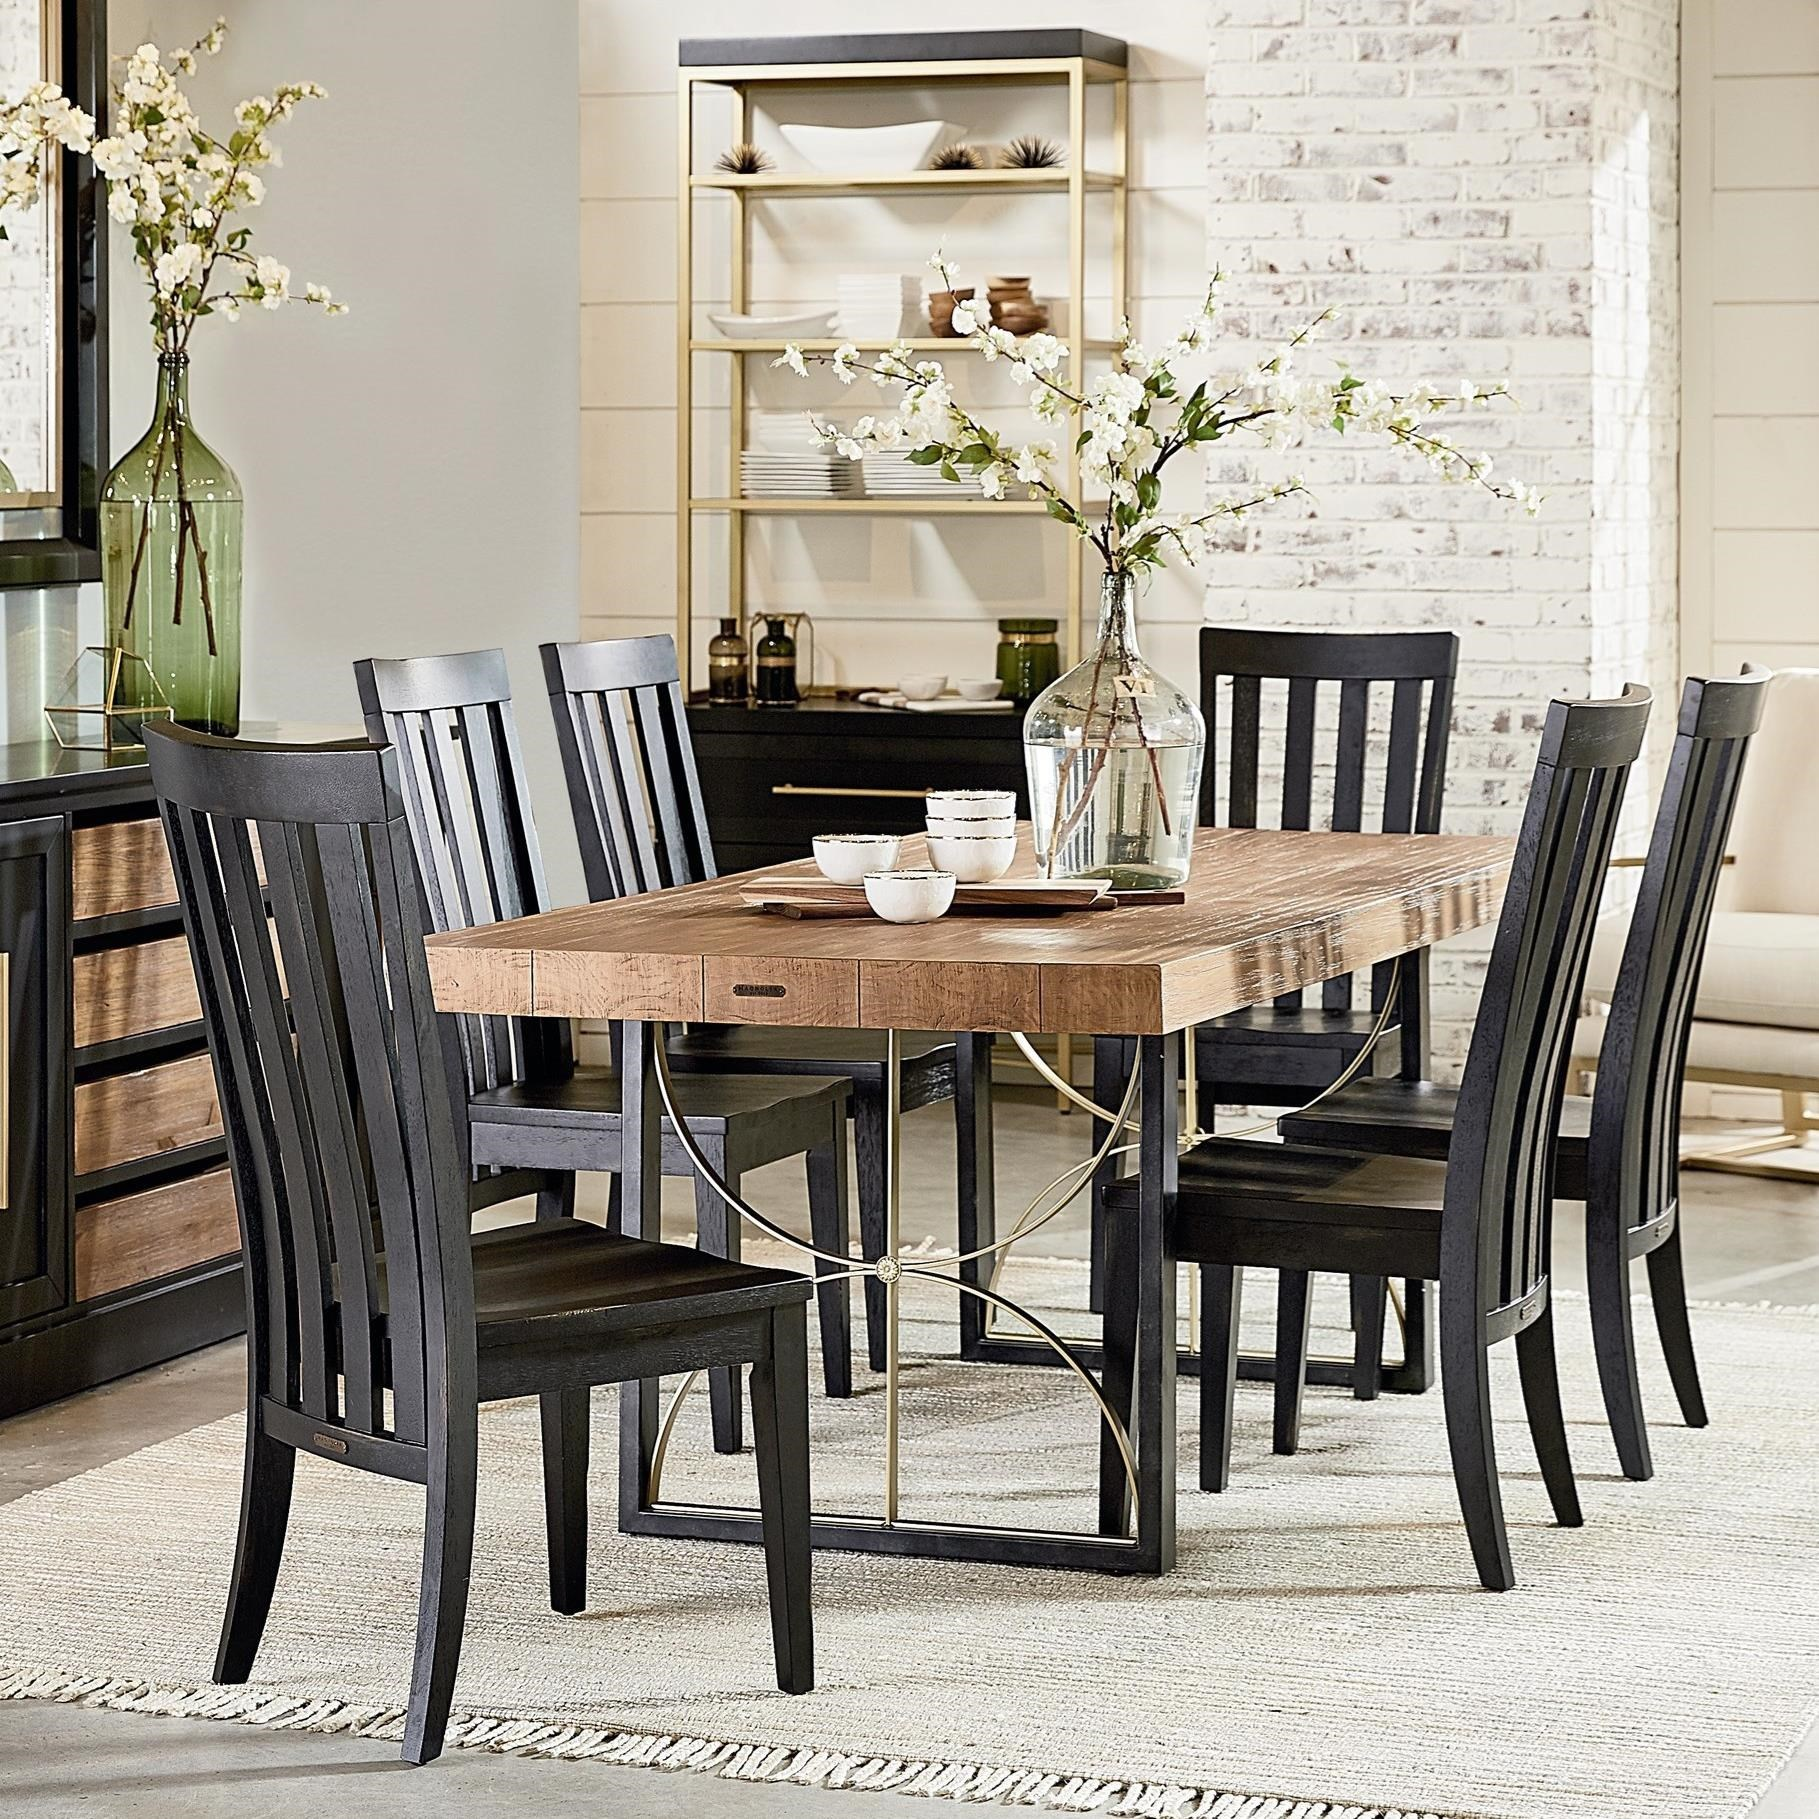 Magnolia Furniture Dining Room Tables Magnolia Home Breakfast